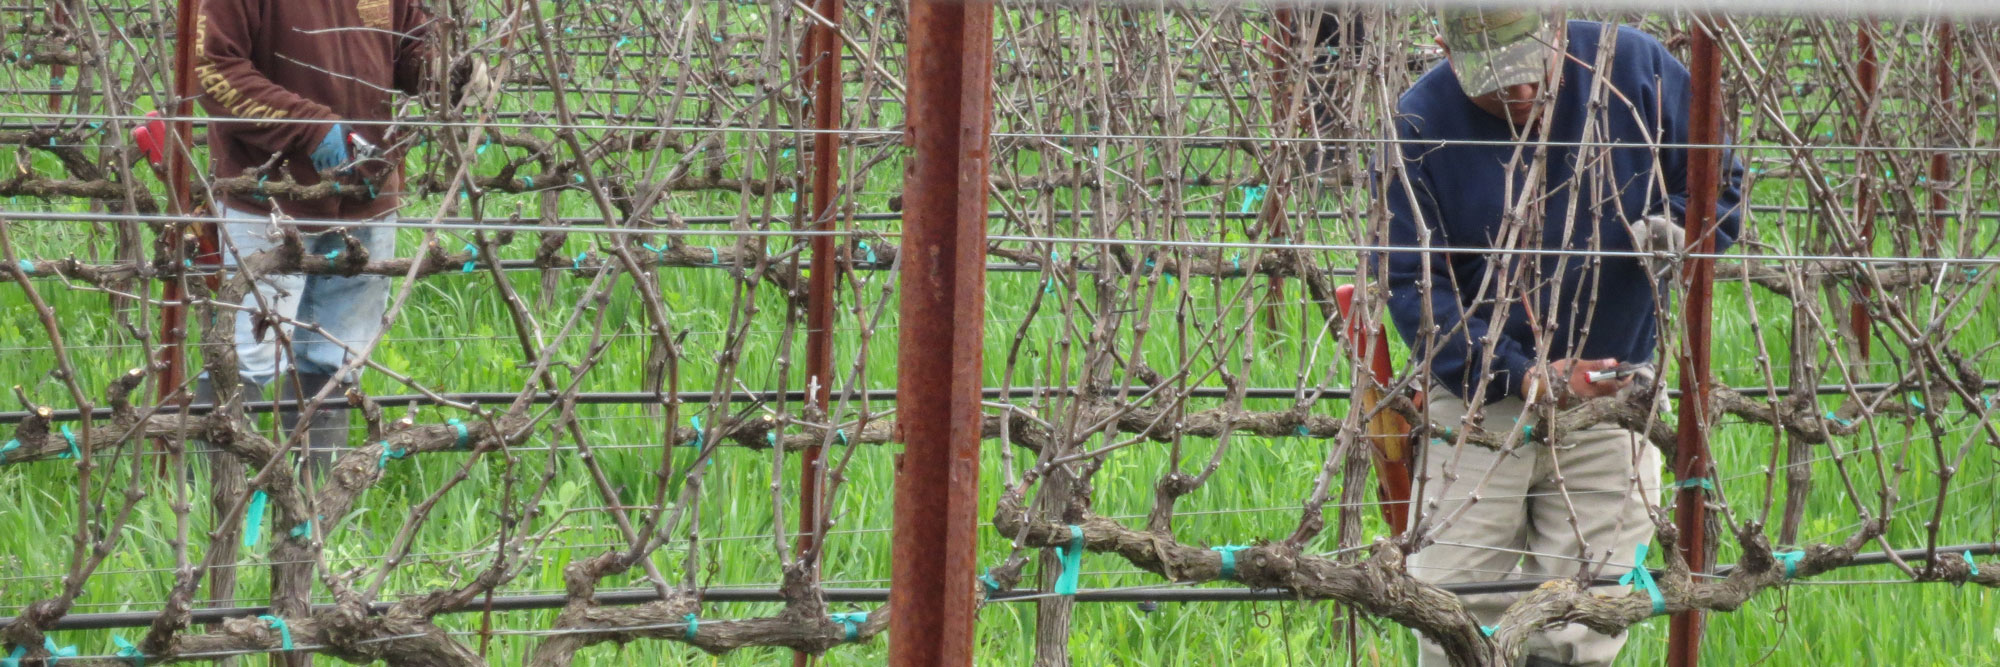 Dearden-Wines-Pruning-2016